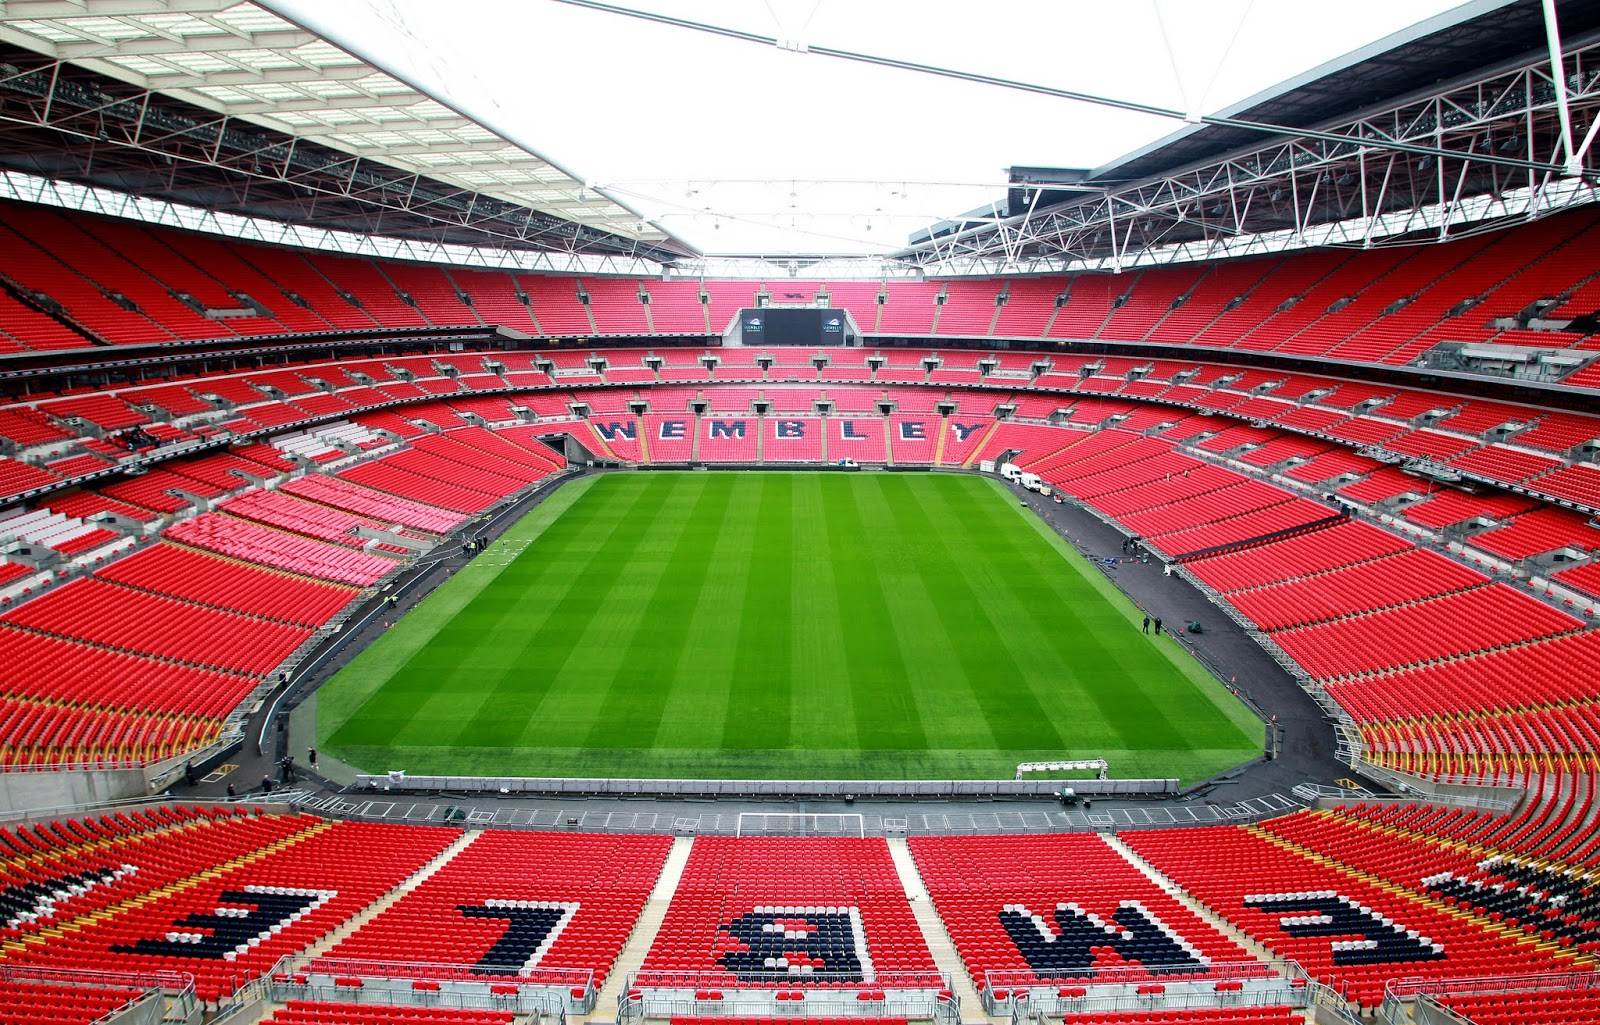 Top 5 Largest Football Stadiums in England